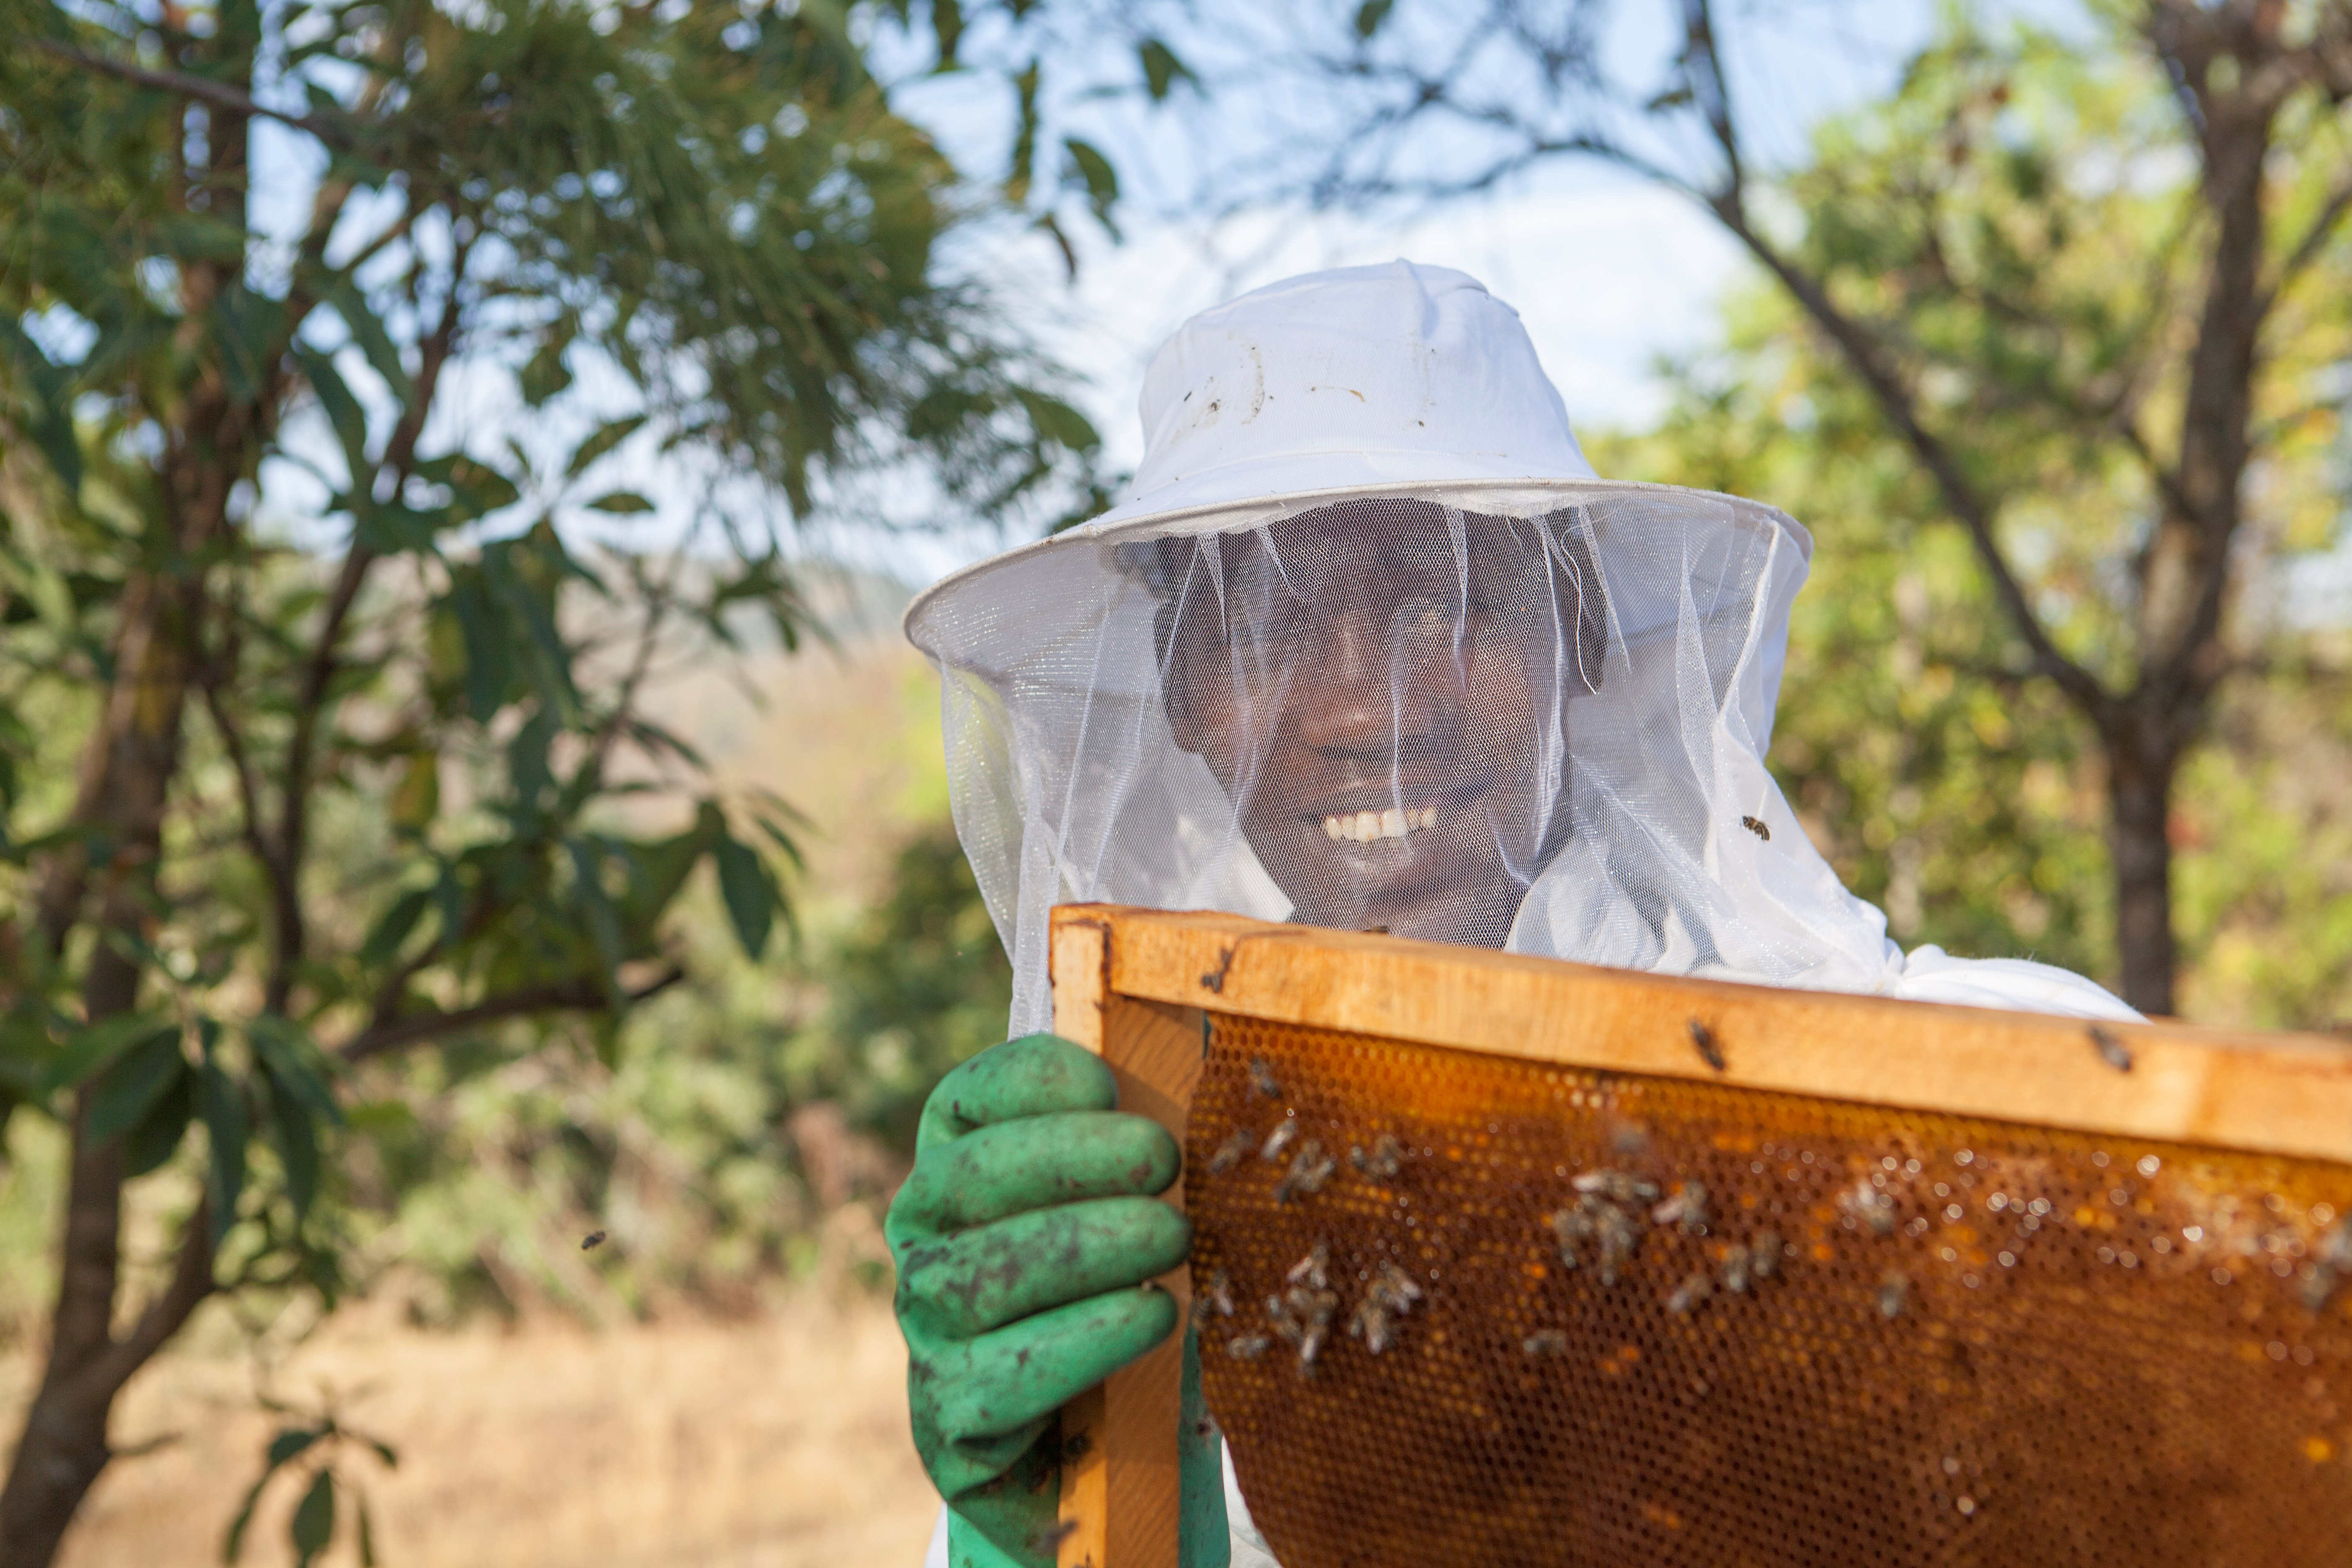 Honey and beeswax value chain analysis in tanzania